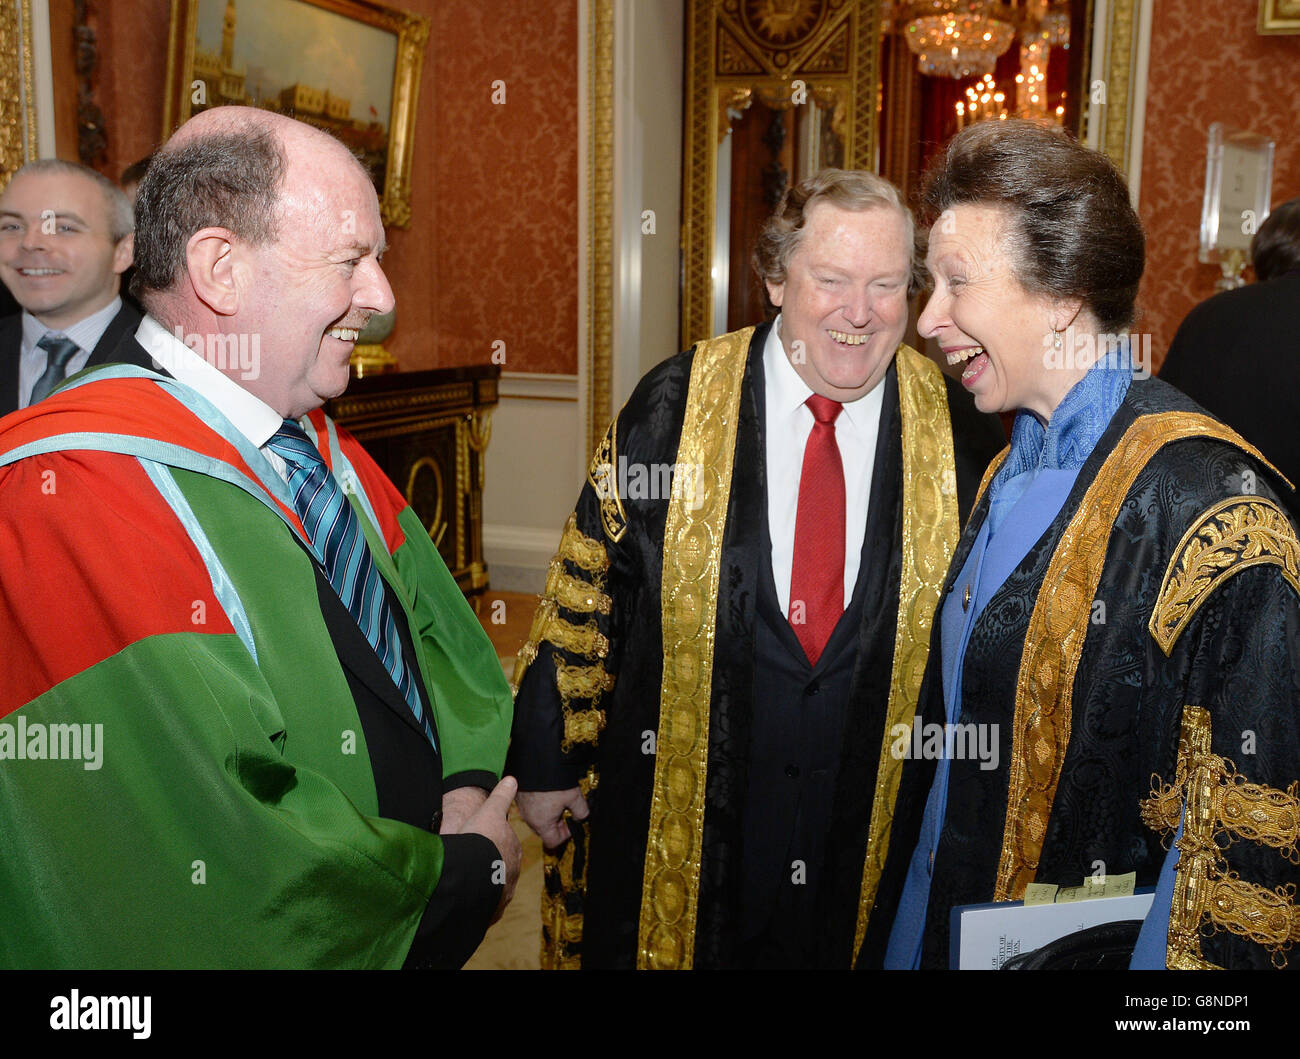 The Queen's Anniversary Prizes for higher and further education